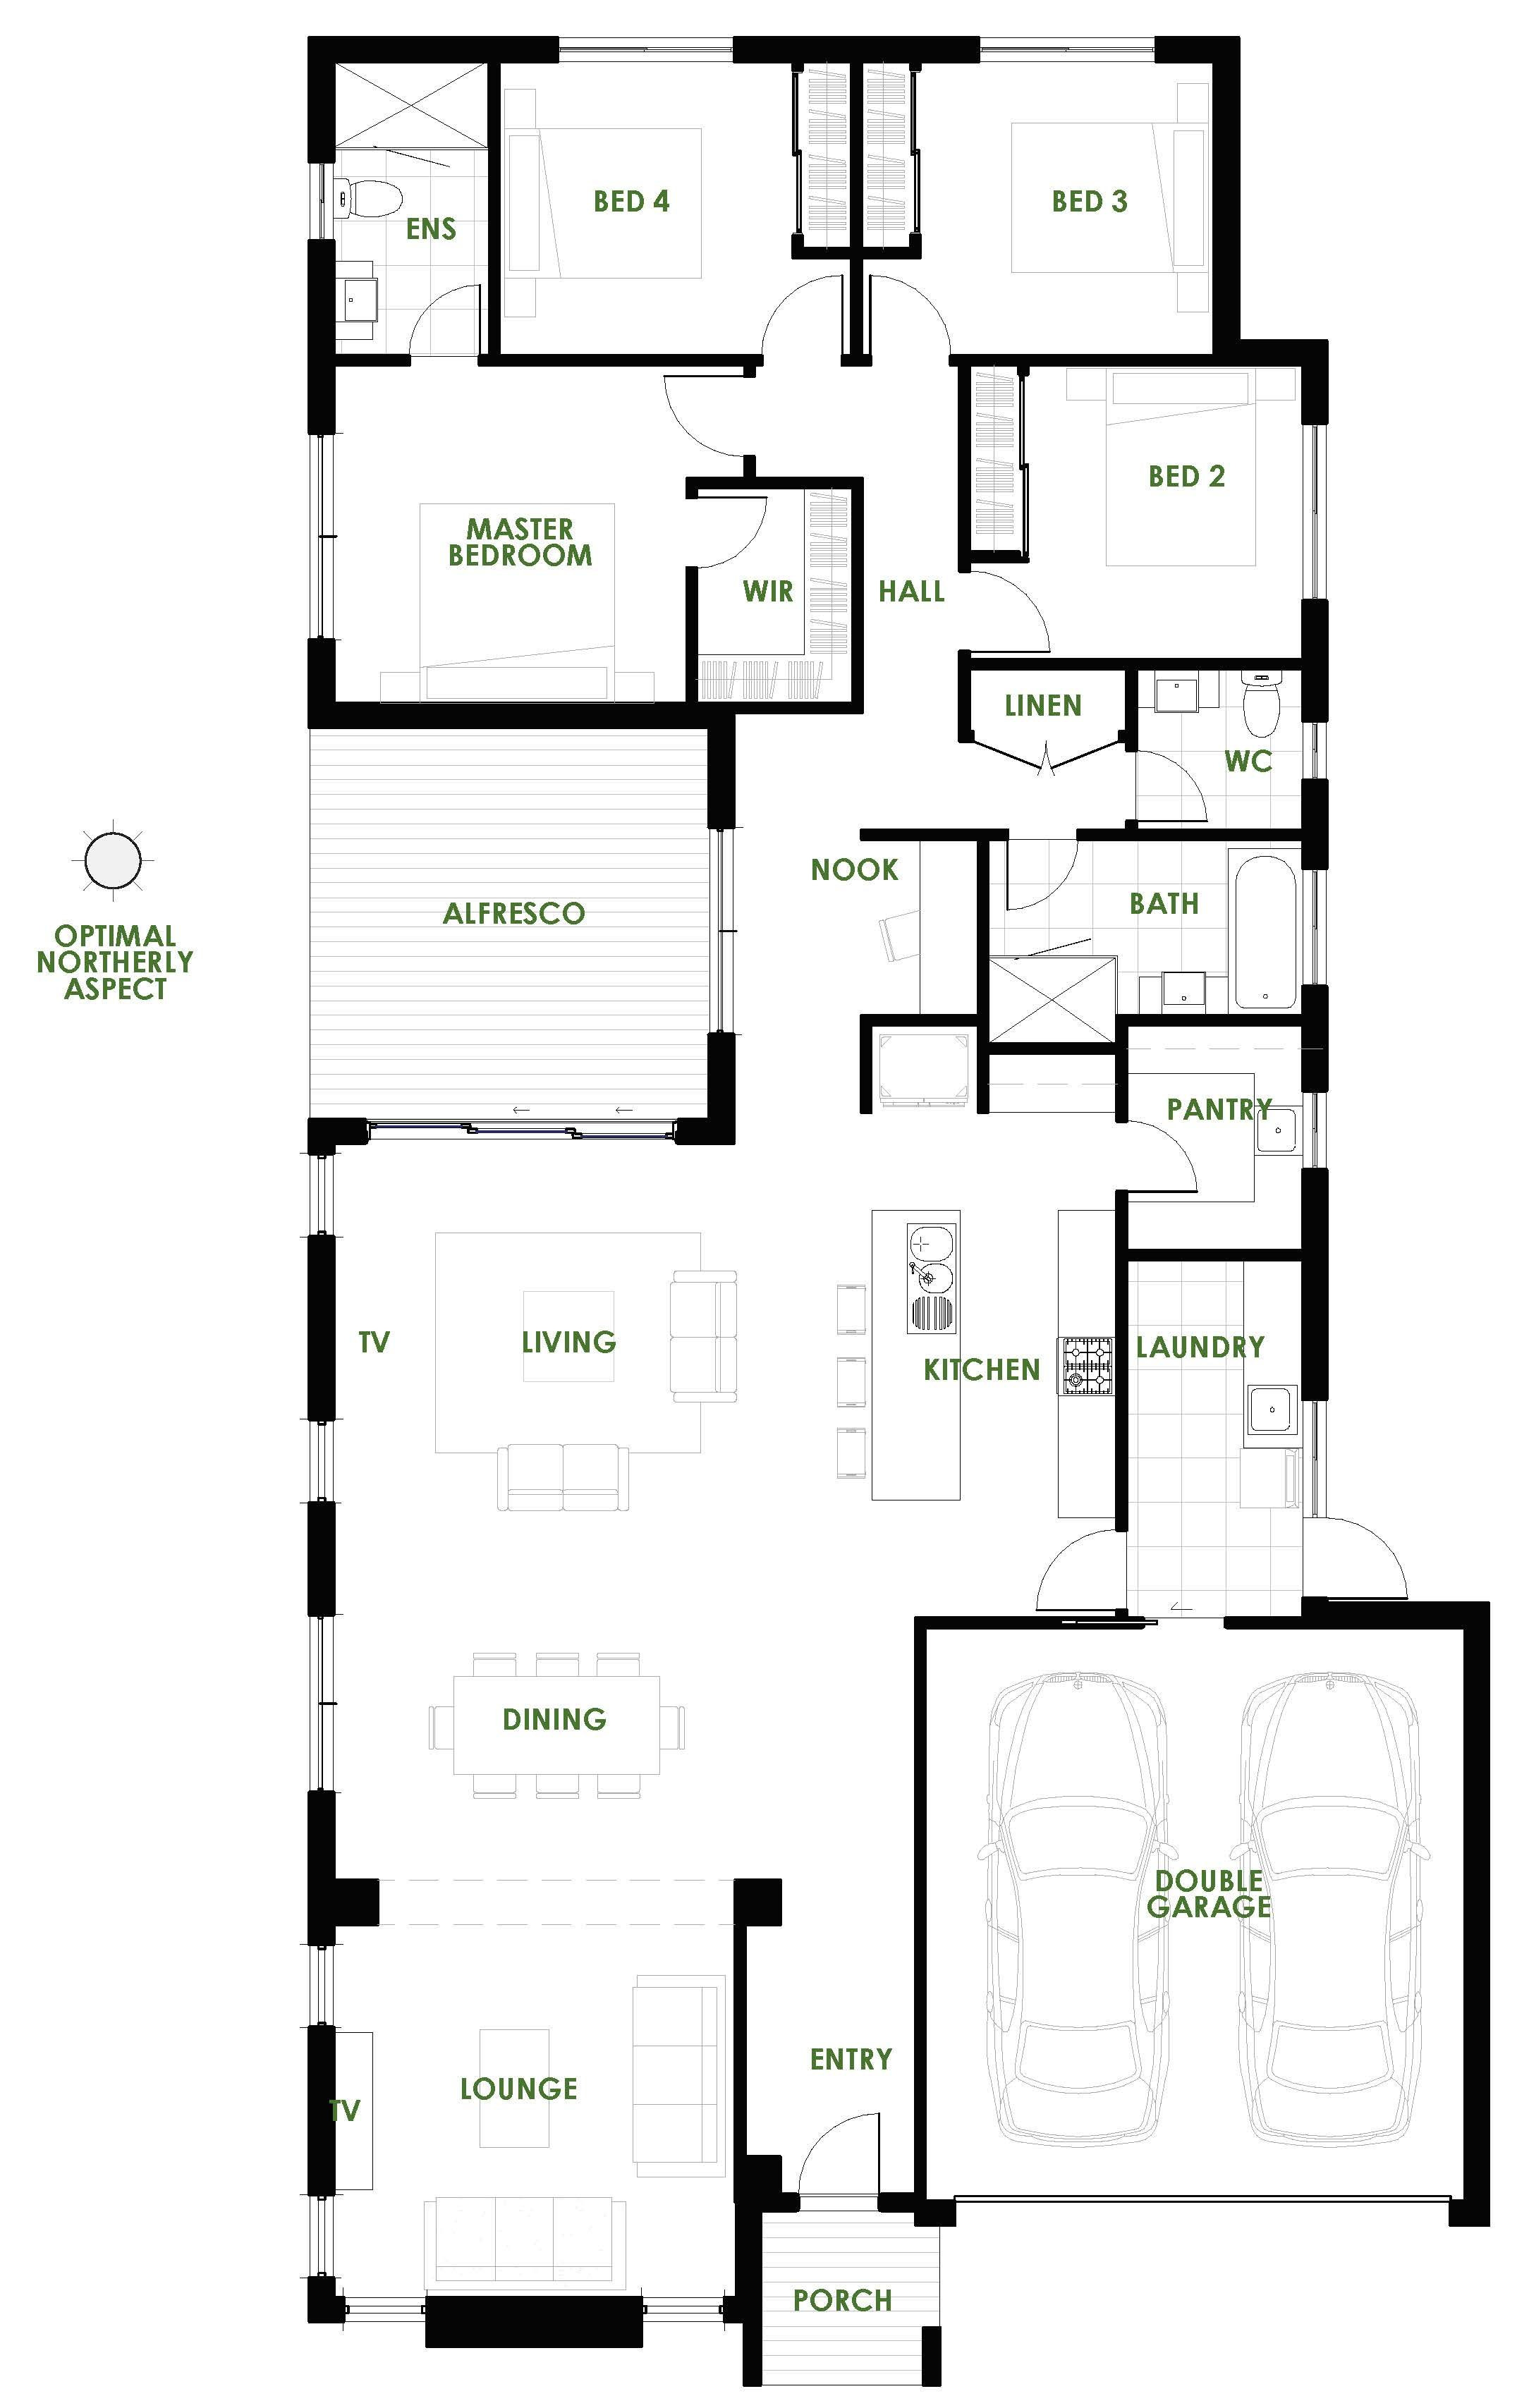 Green Energy Efficient House Plans New are You Looking for the Latest In Eco House Design A